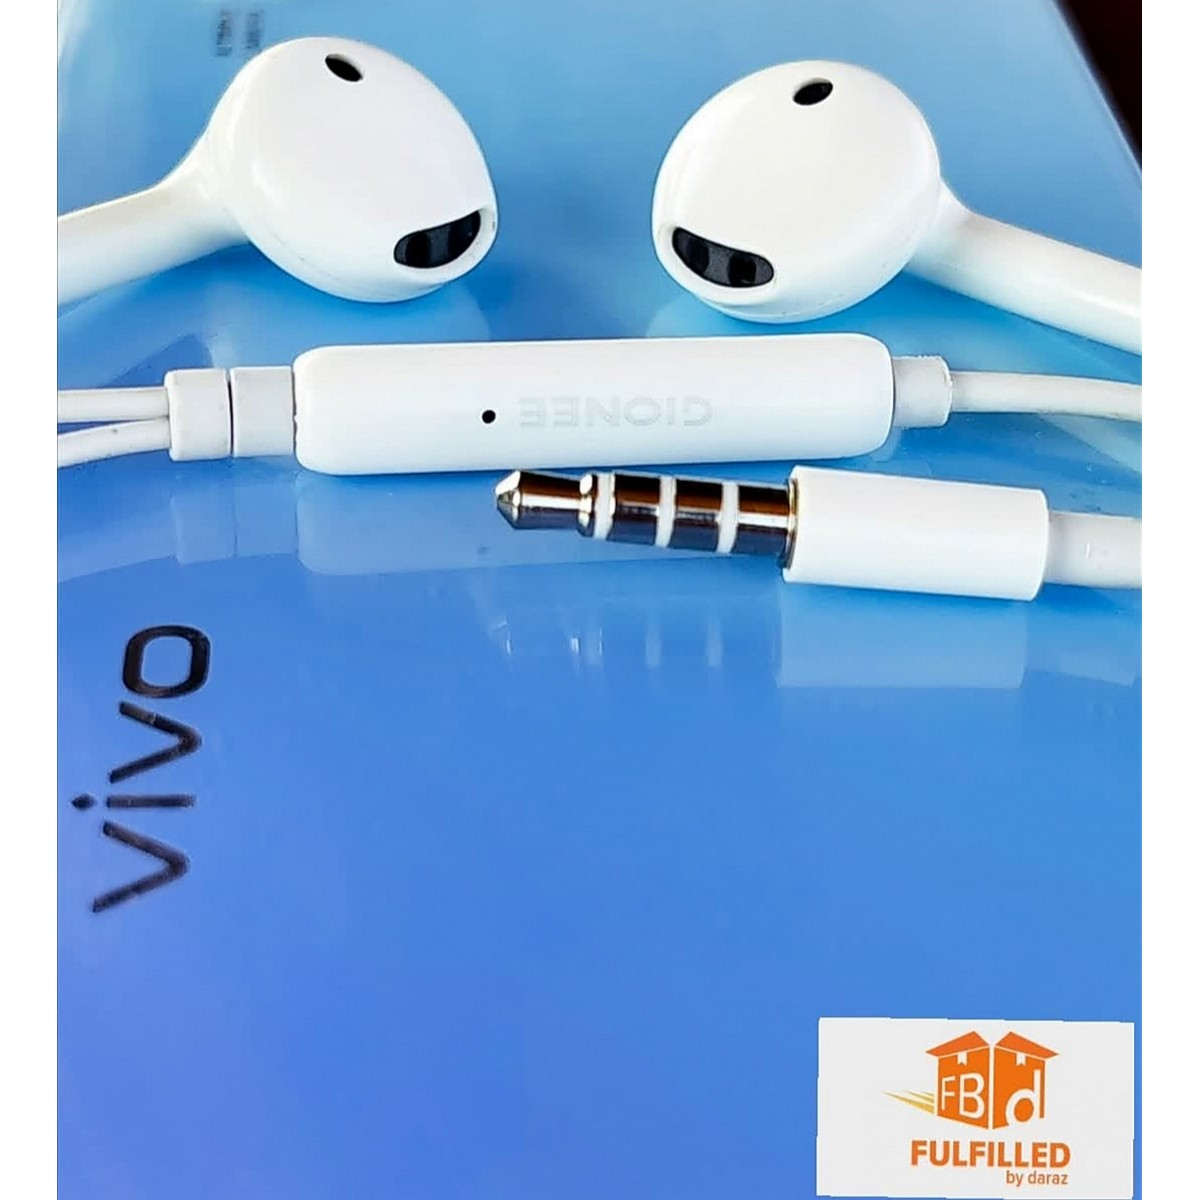 Gionee Original handsfree for Android-100% earphones connected for all mobiles-Universal Handsfree for PUBG-best mobile handsfree